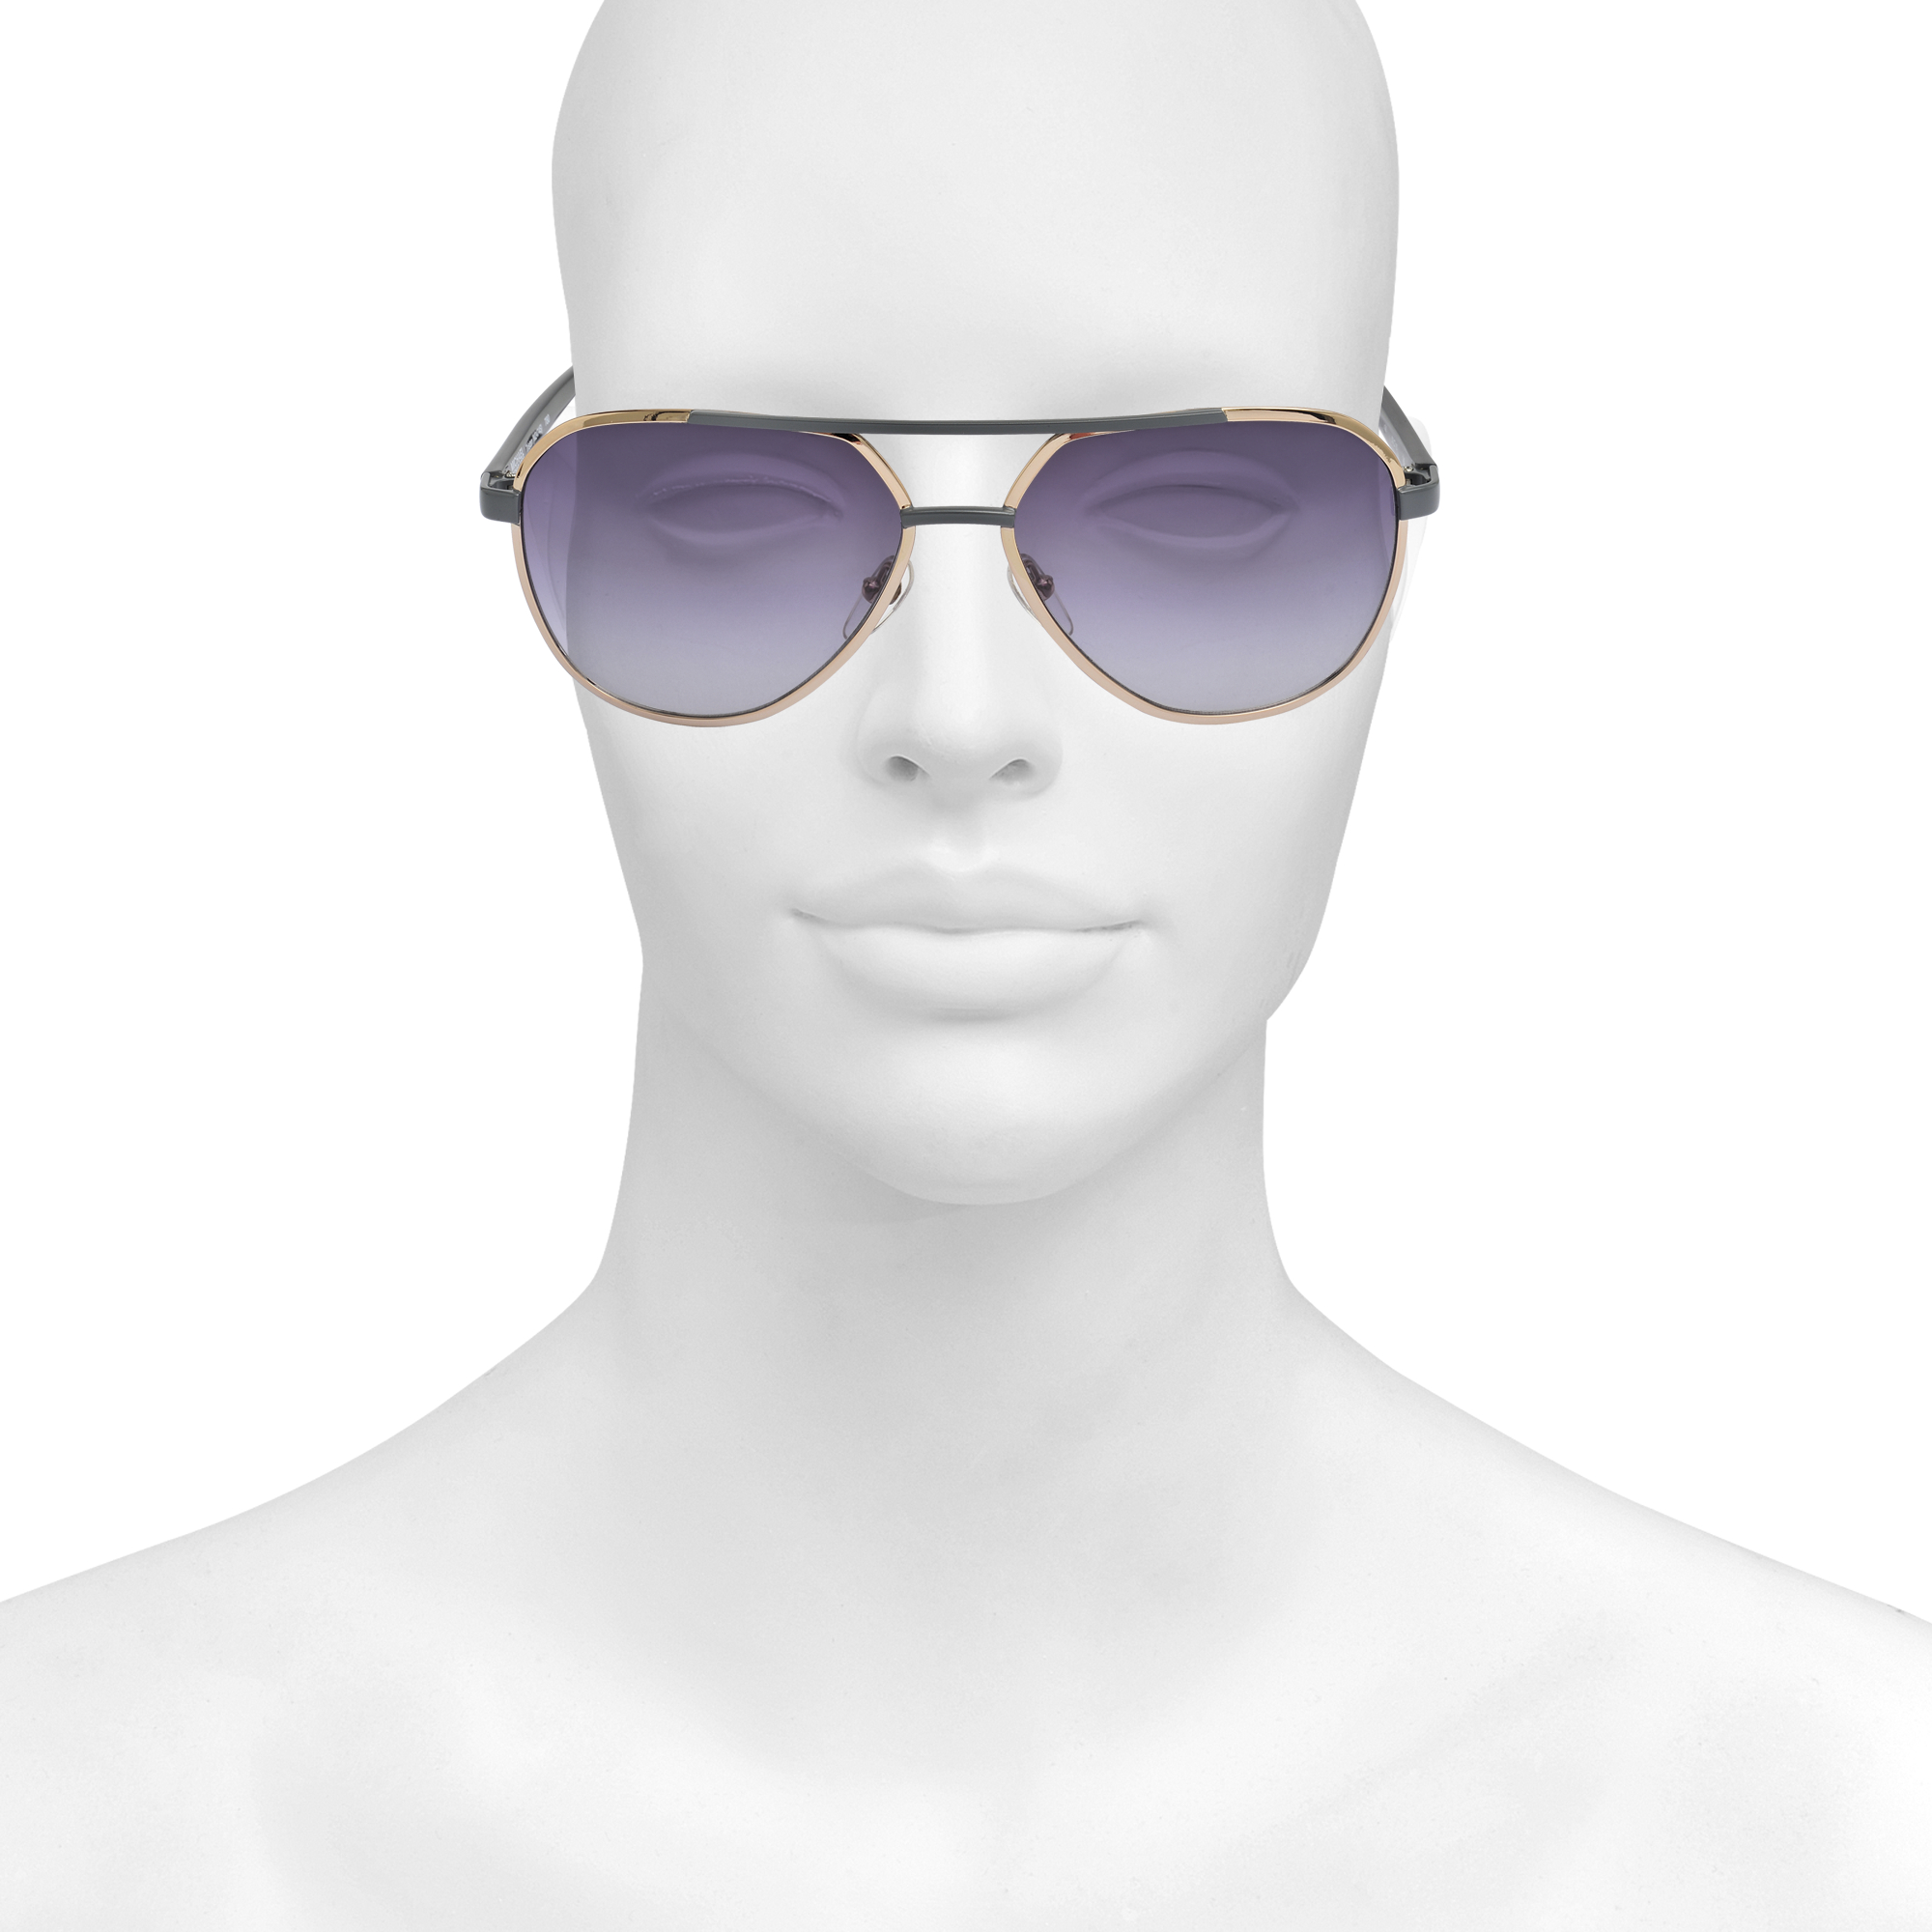 1bca6958fbf8 Michael Kors Tristan Sunglasses in Purple - Lyst